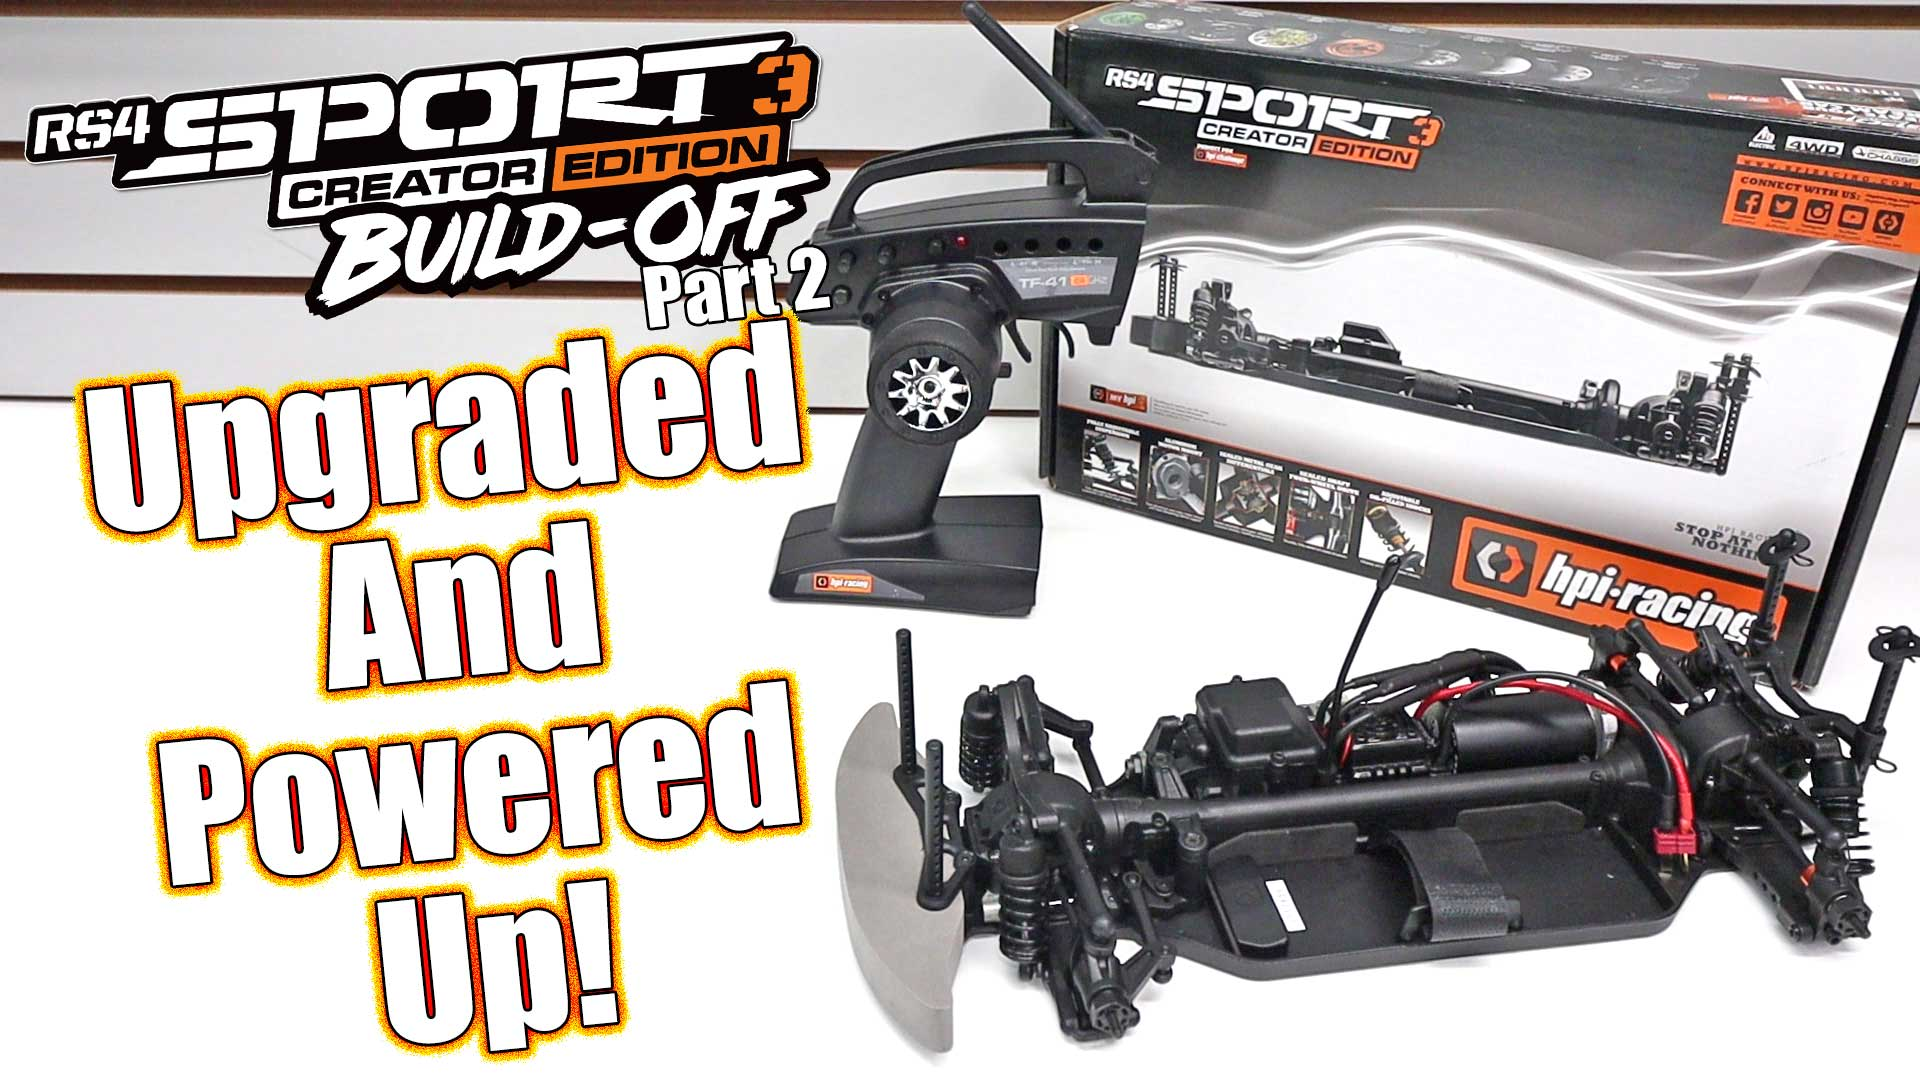 HPI Racing RS4 Sport 3 Creator Edition Build-Off Part 2